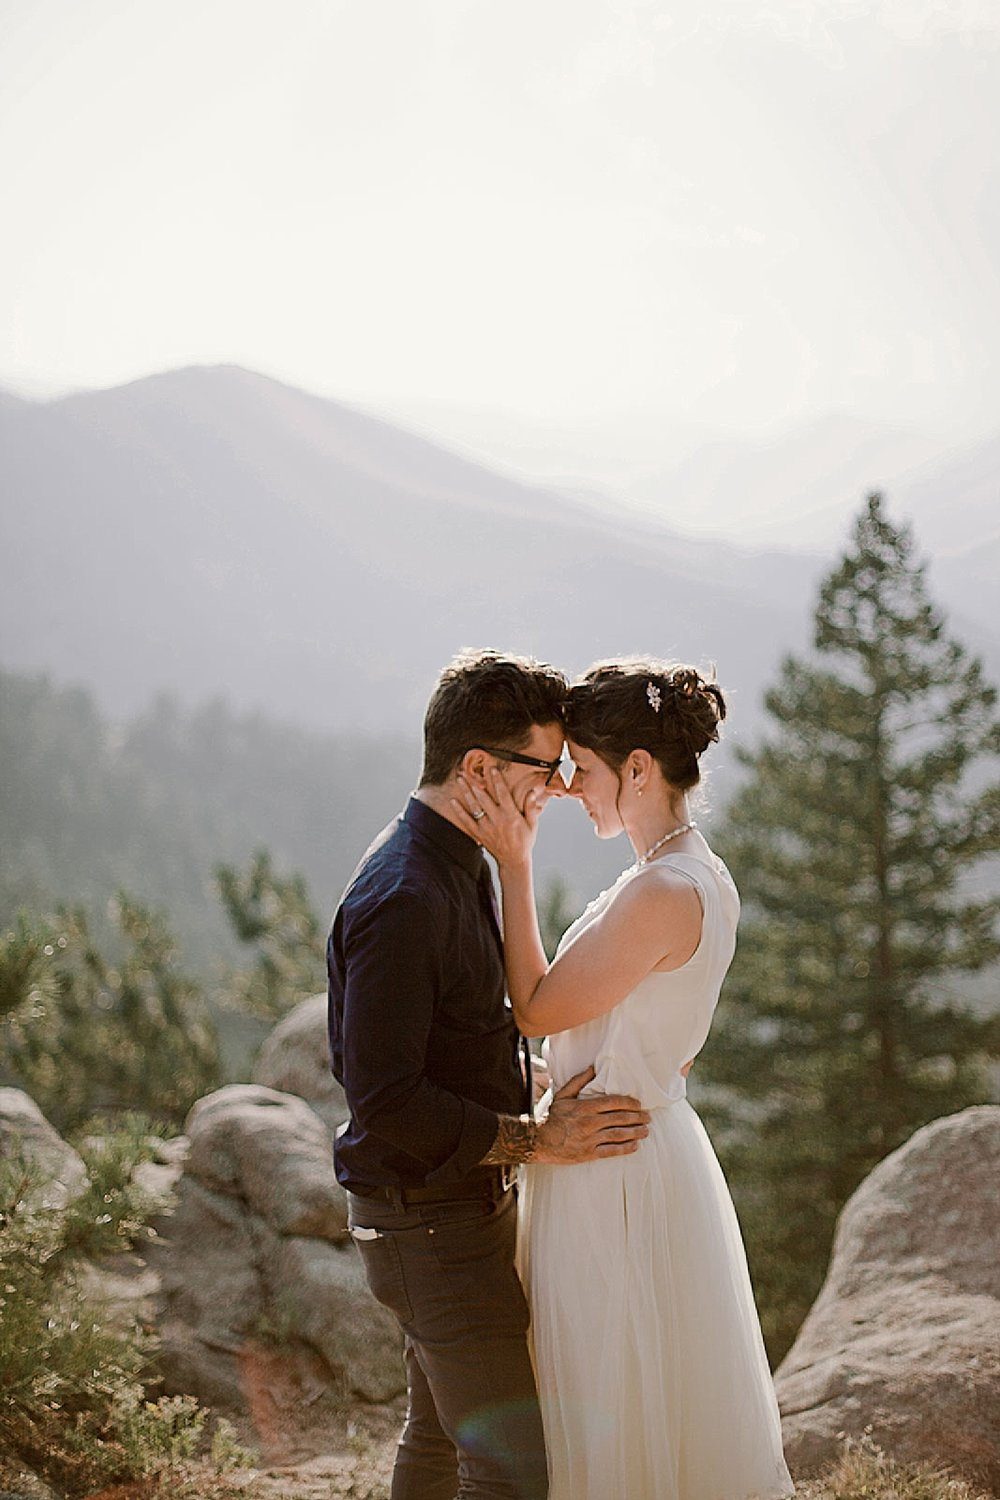 eloping couple, boulder colorado elopement, boulder colorado self solemnization, colorado self solemnization, boulder colorado elopement photographer, realization point elopement